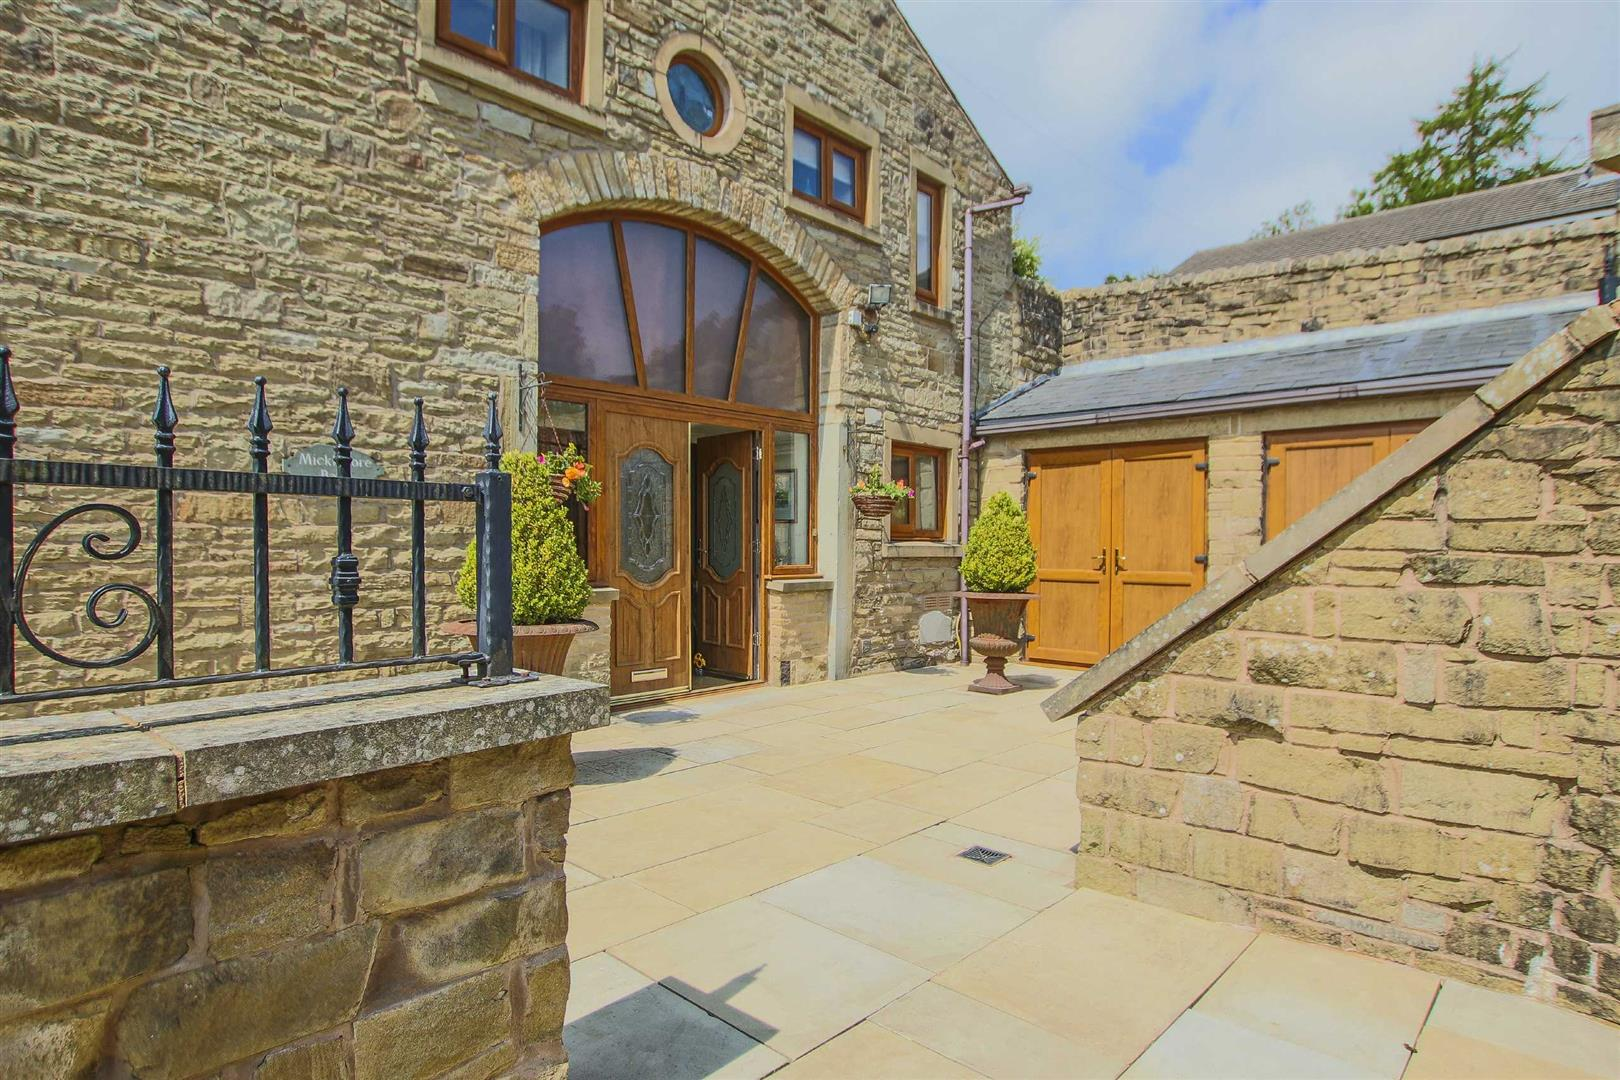 4 Bedroom Barn Conversion For Sale - p033135_29.jpg